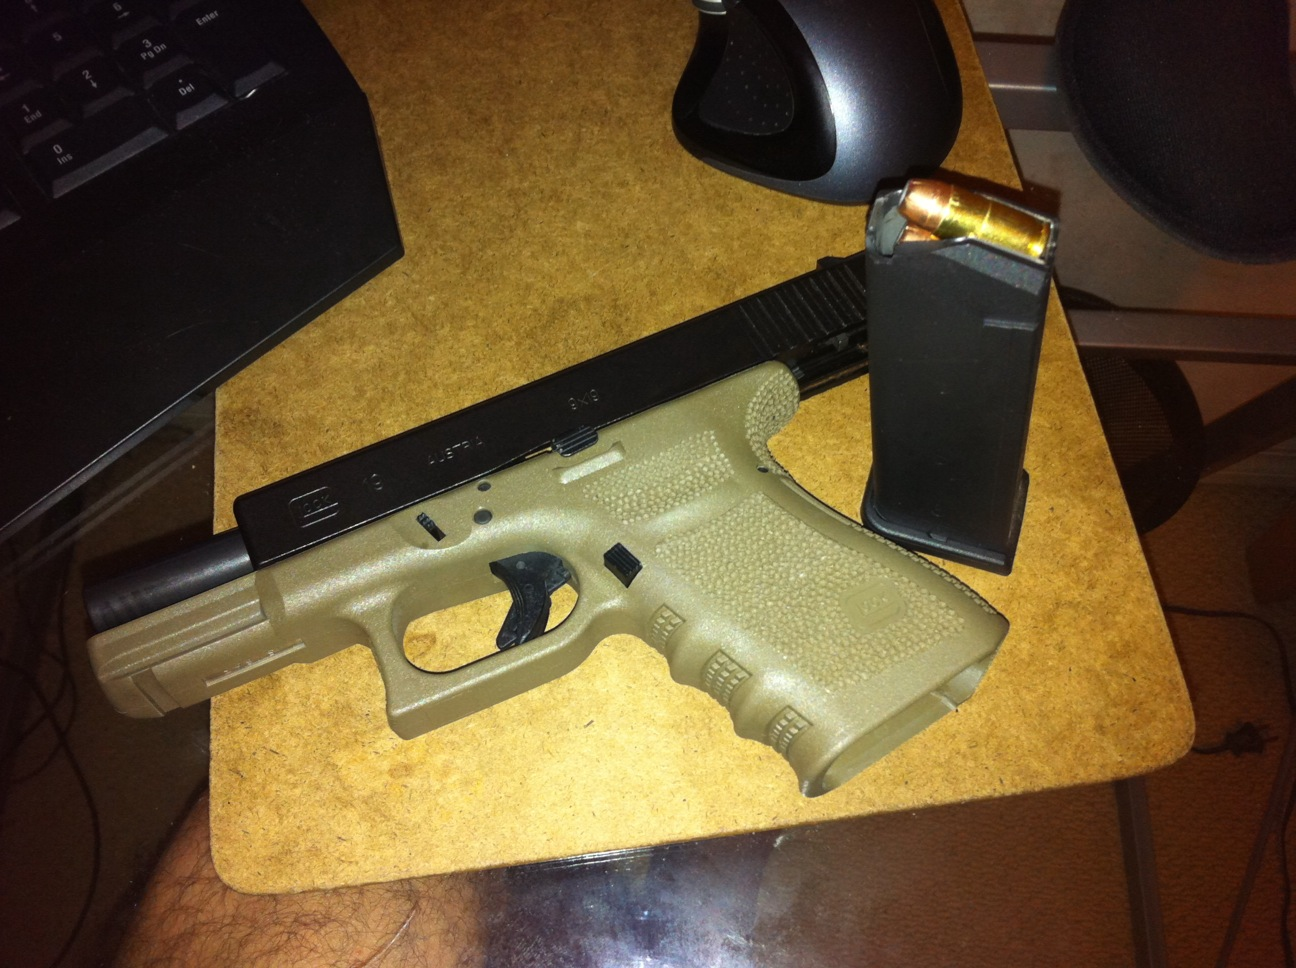 New OD green Gen 3 g19 (Pic) and a question-photo.jpg